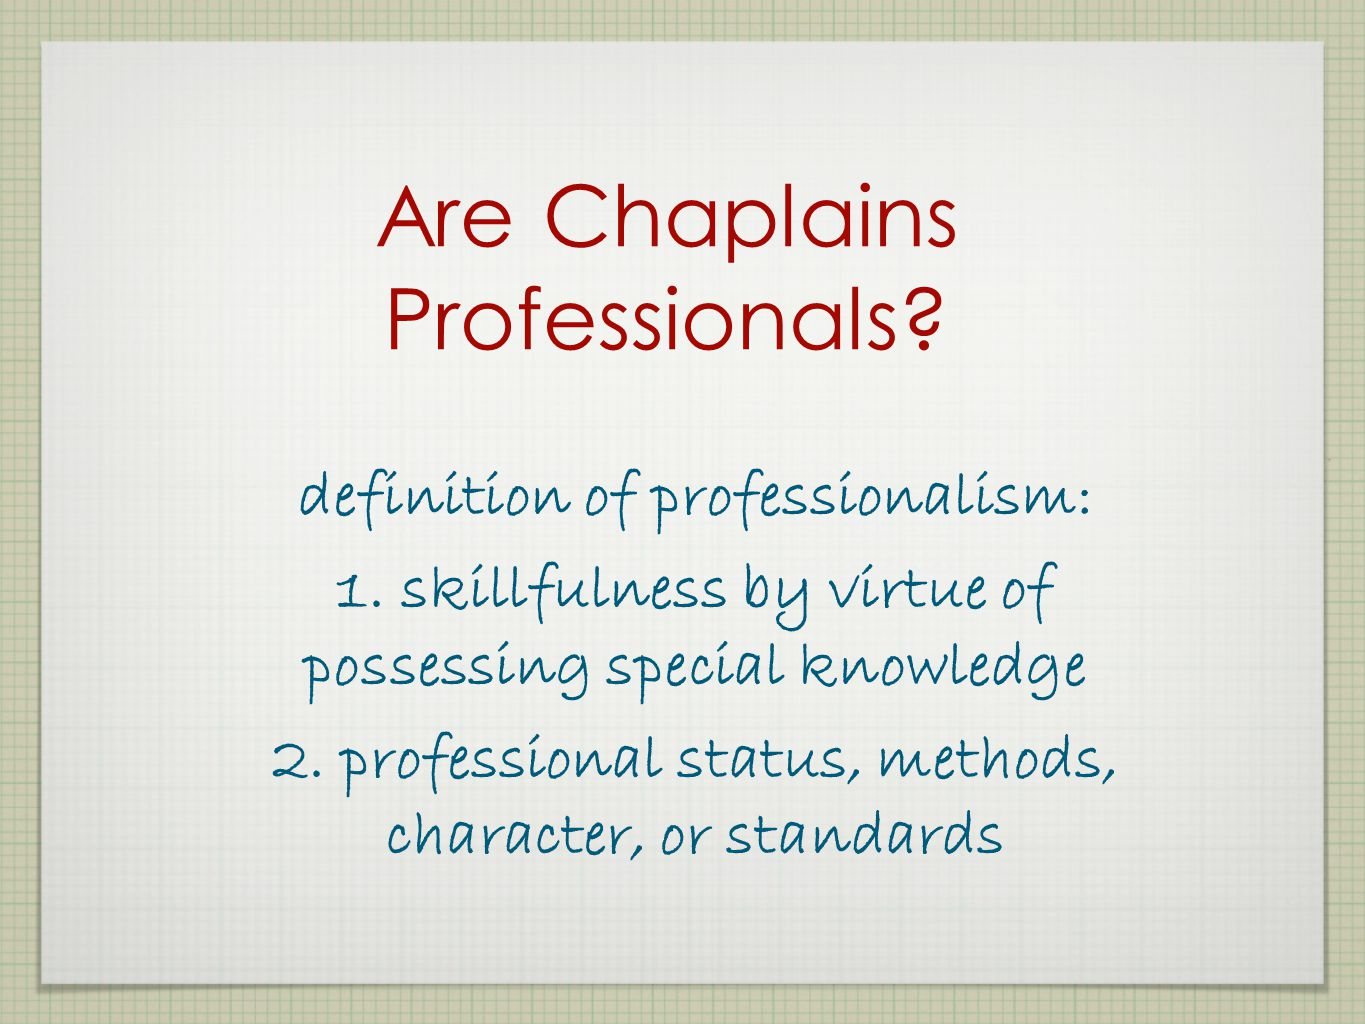 Are Chaplains Professionals.definition of professionalism: 1.